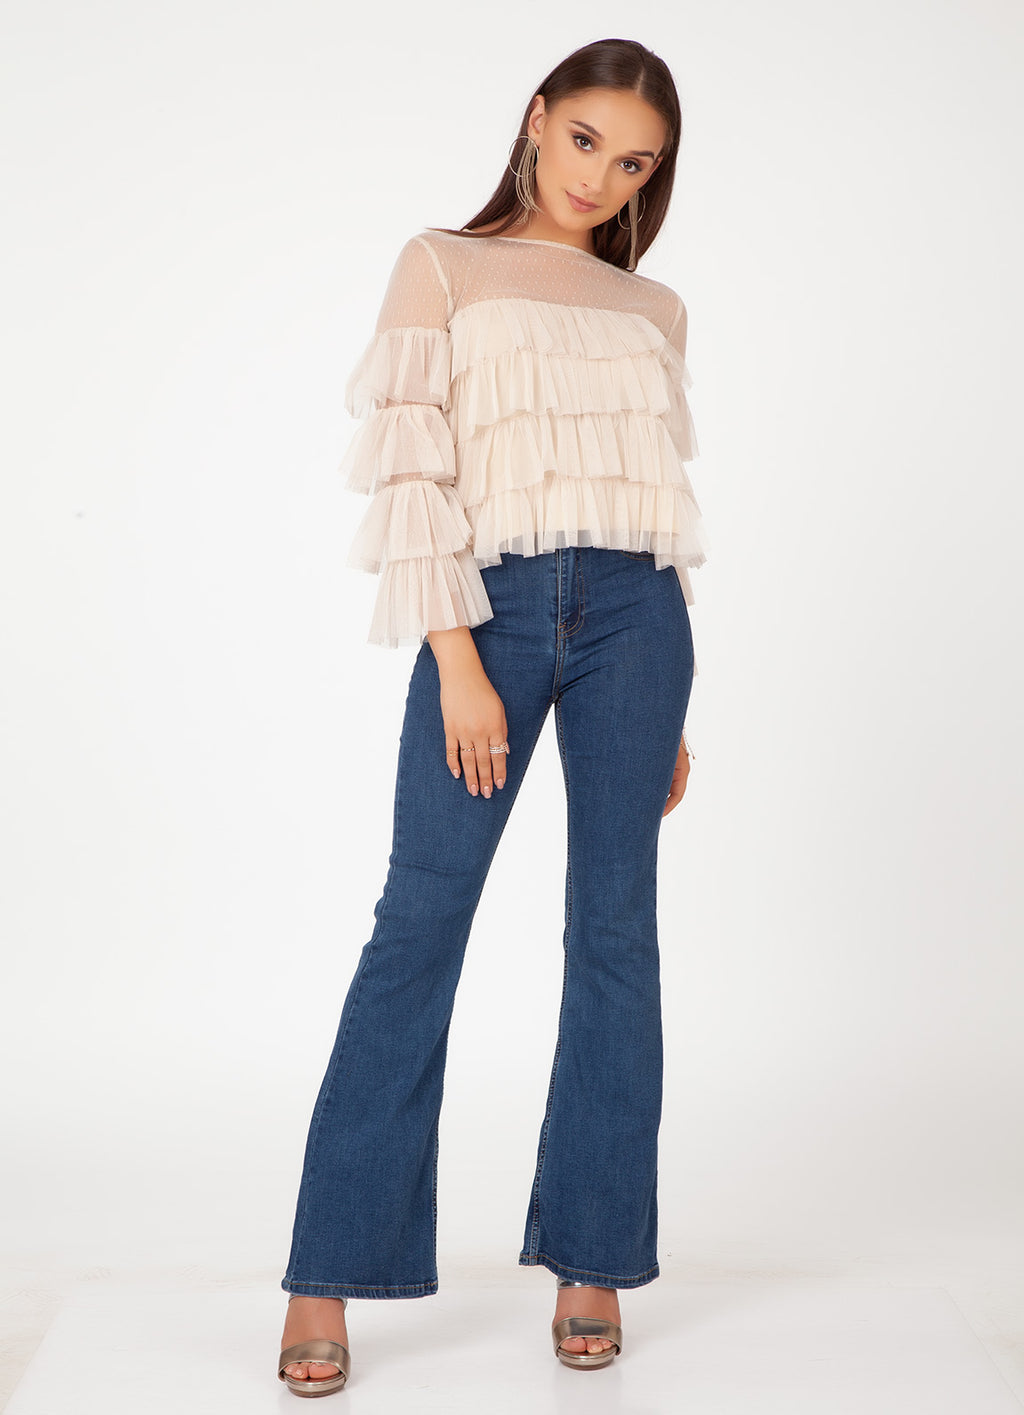 Nude Frill Top